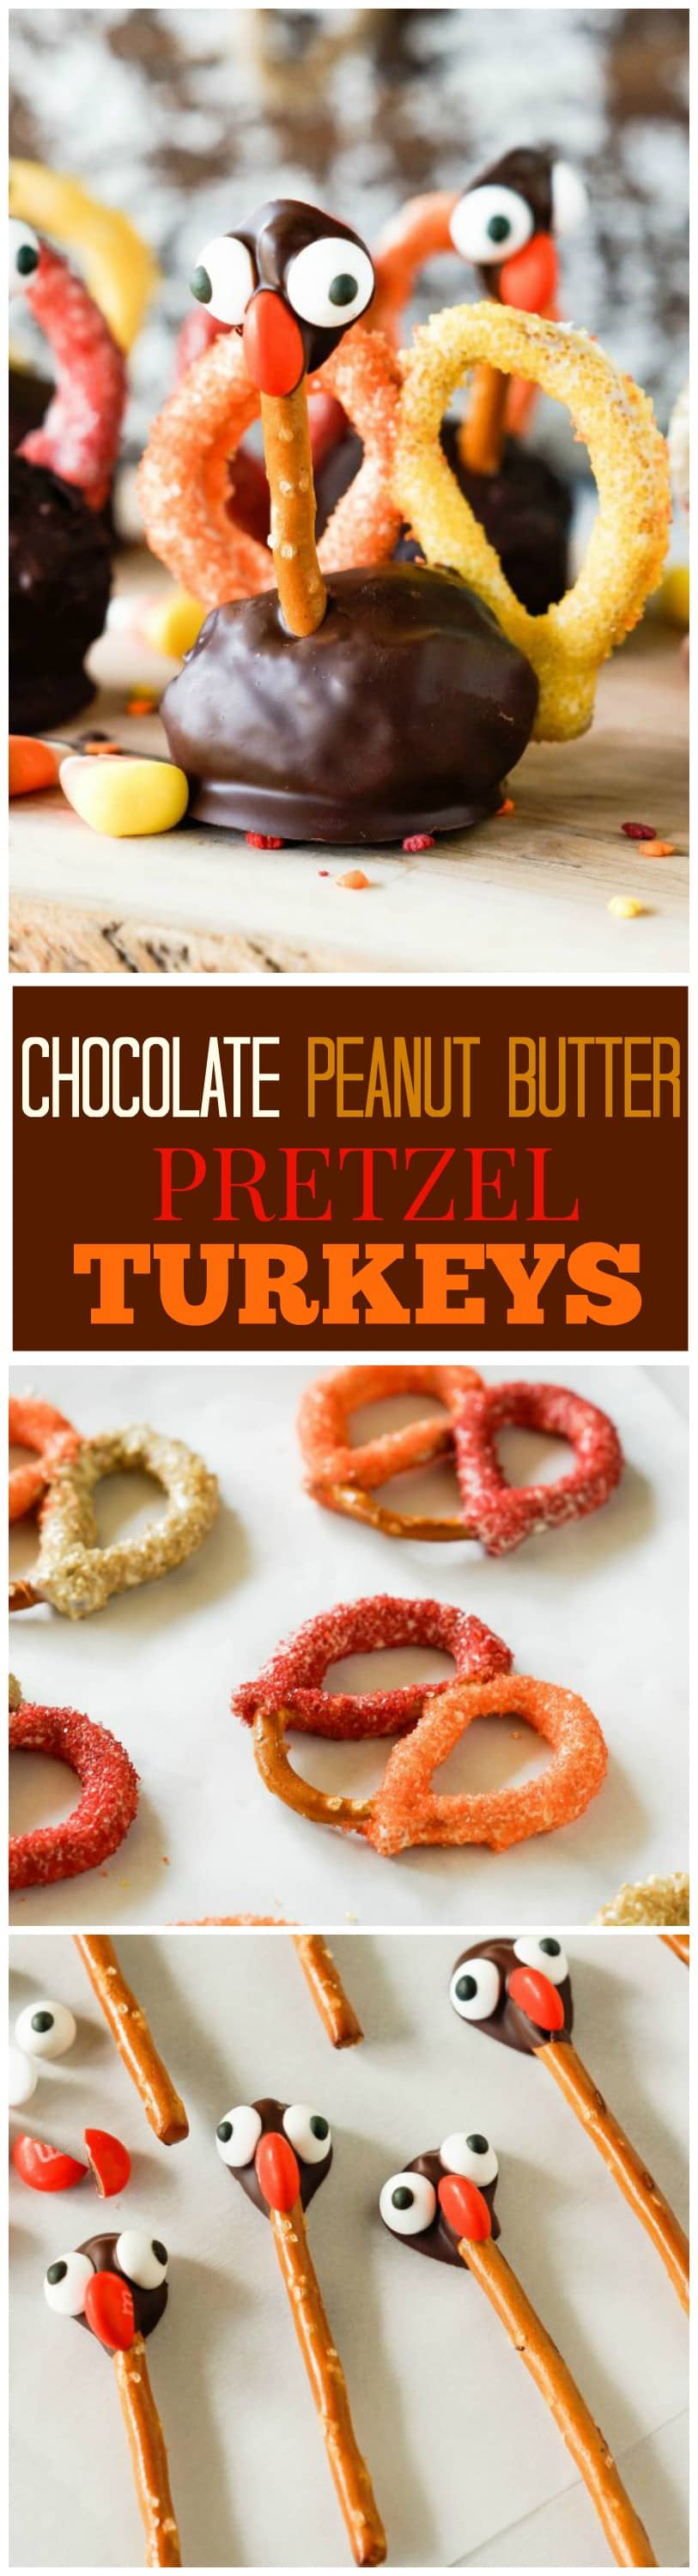 Chocolate Peanut Butter Pretzel Turkeys - a peanut butter ball dipped in chocolate with pretzel feathers! the-girl-who-ate-everything.com